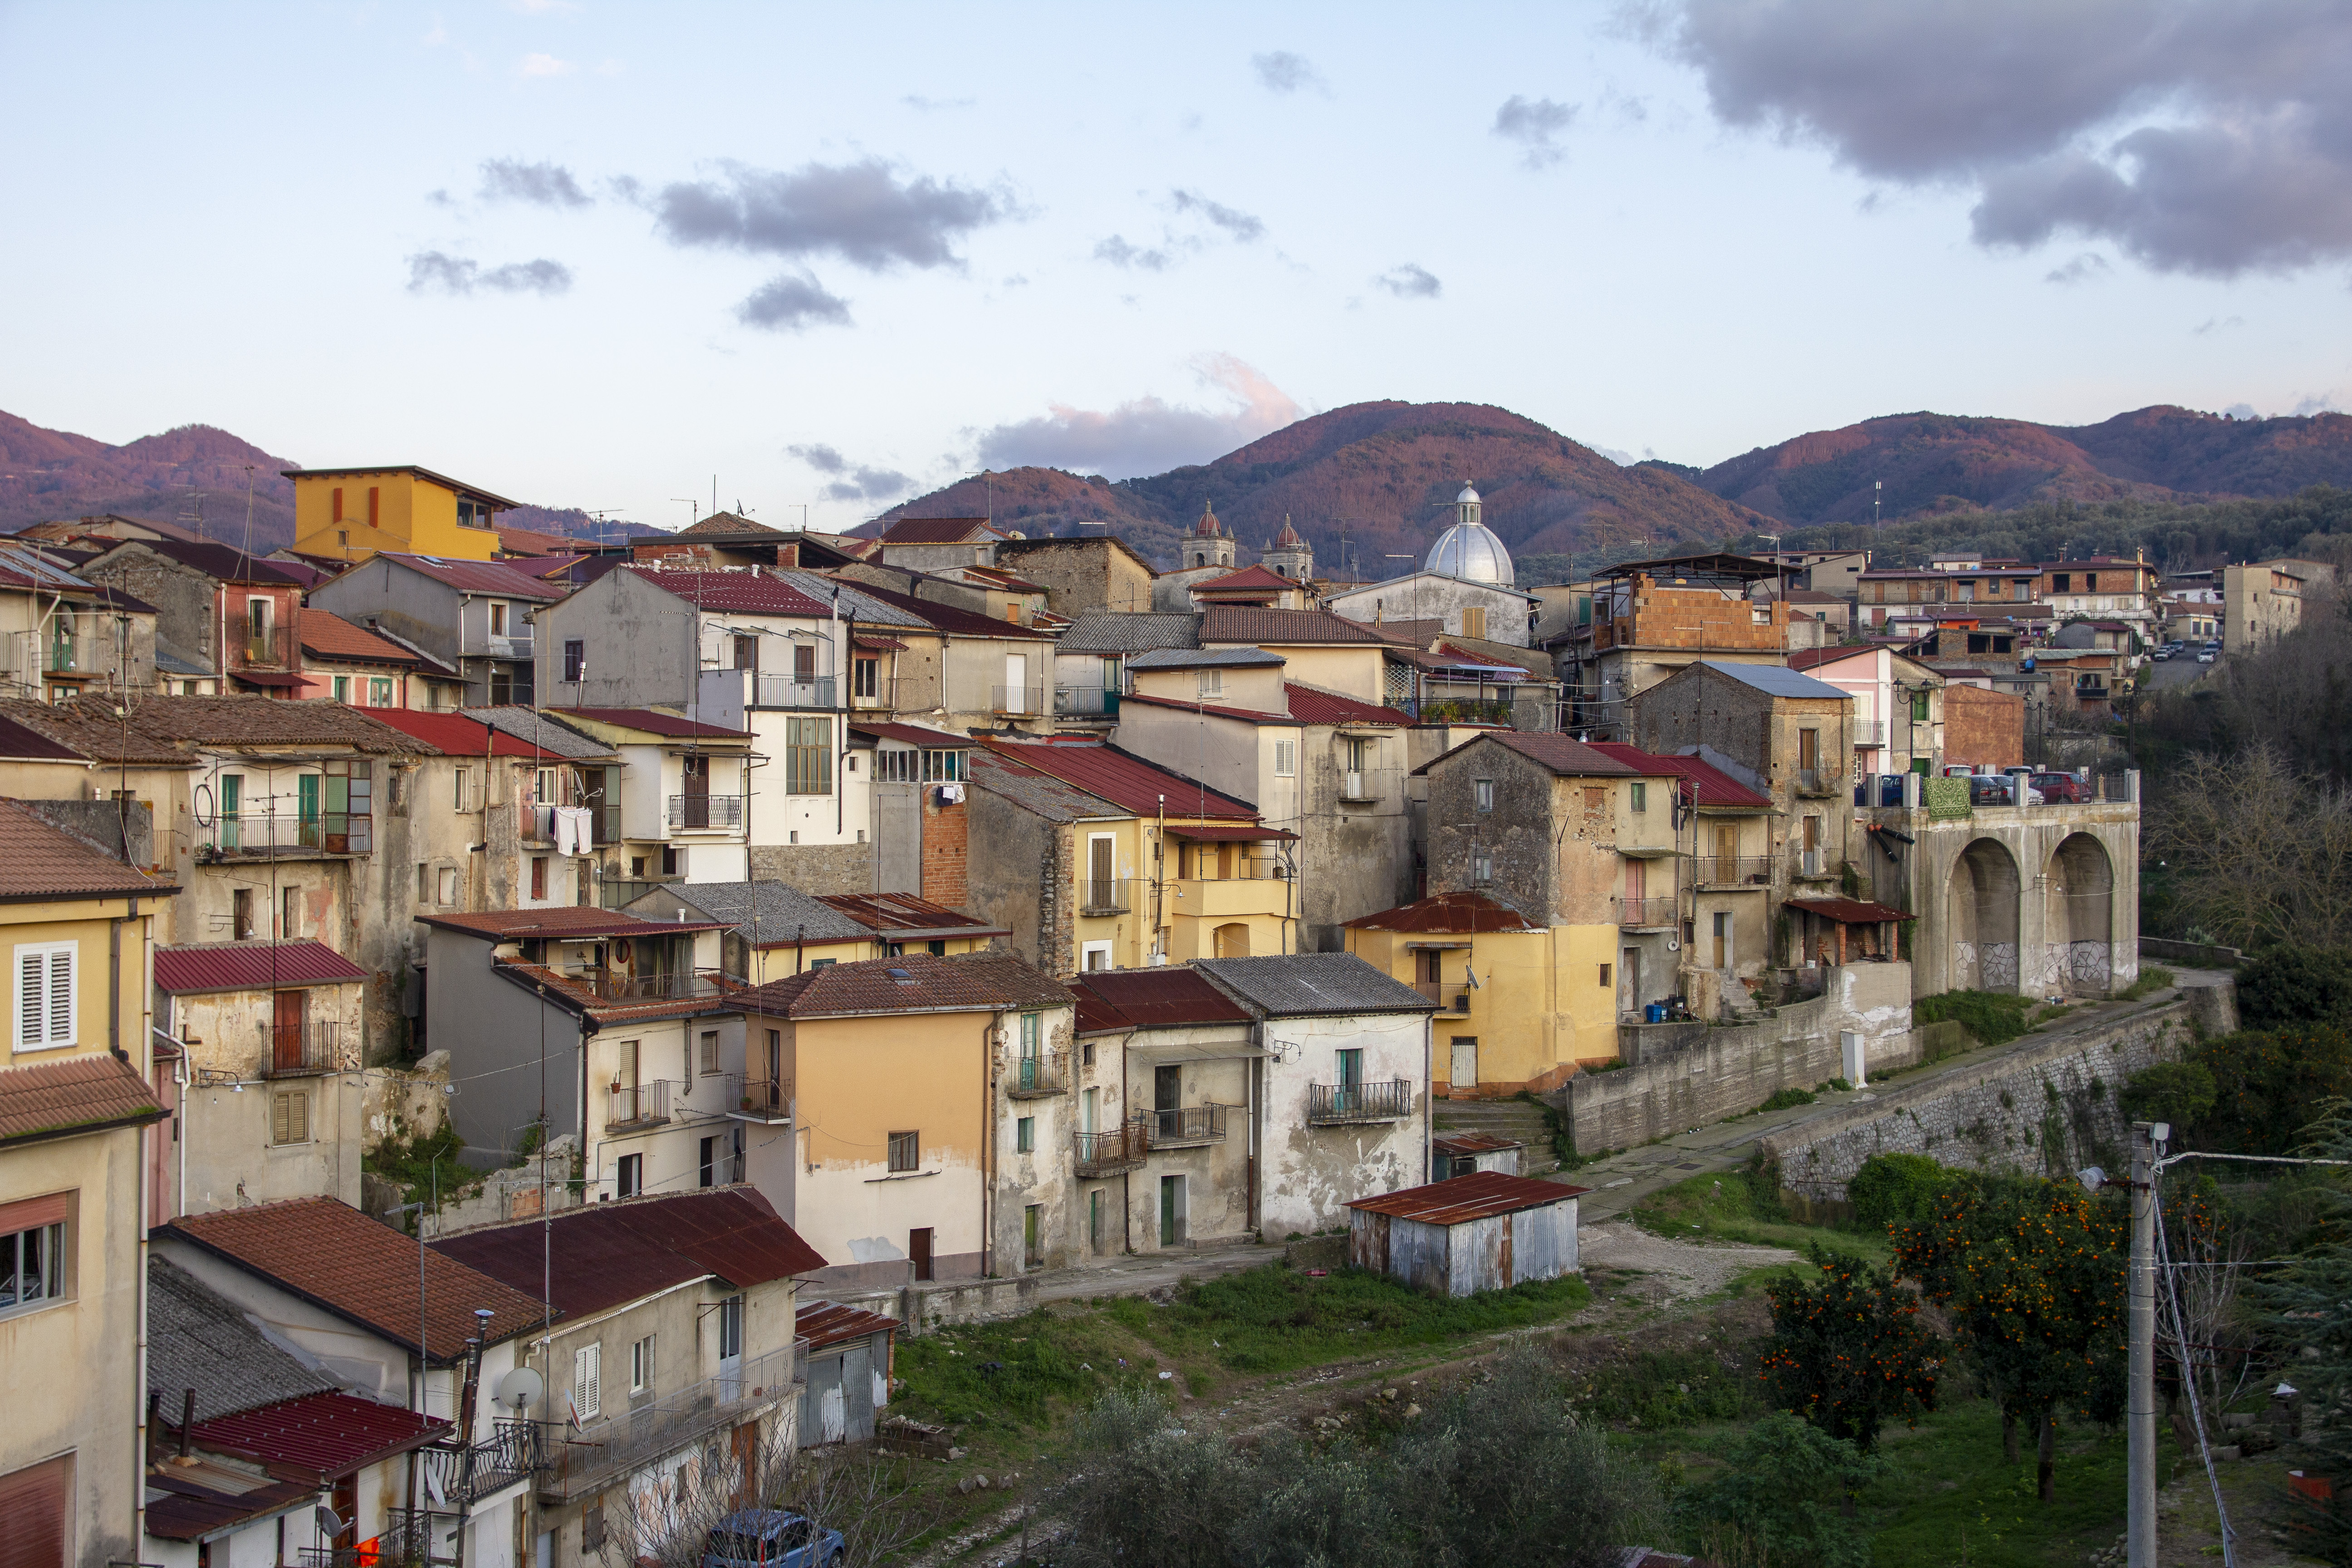 Cinquefrondi the COVID free village in Italy attracting buyers ...